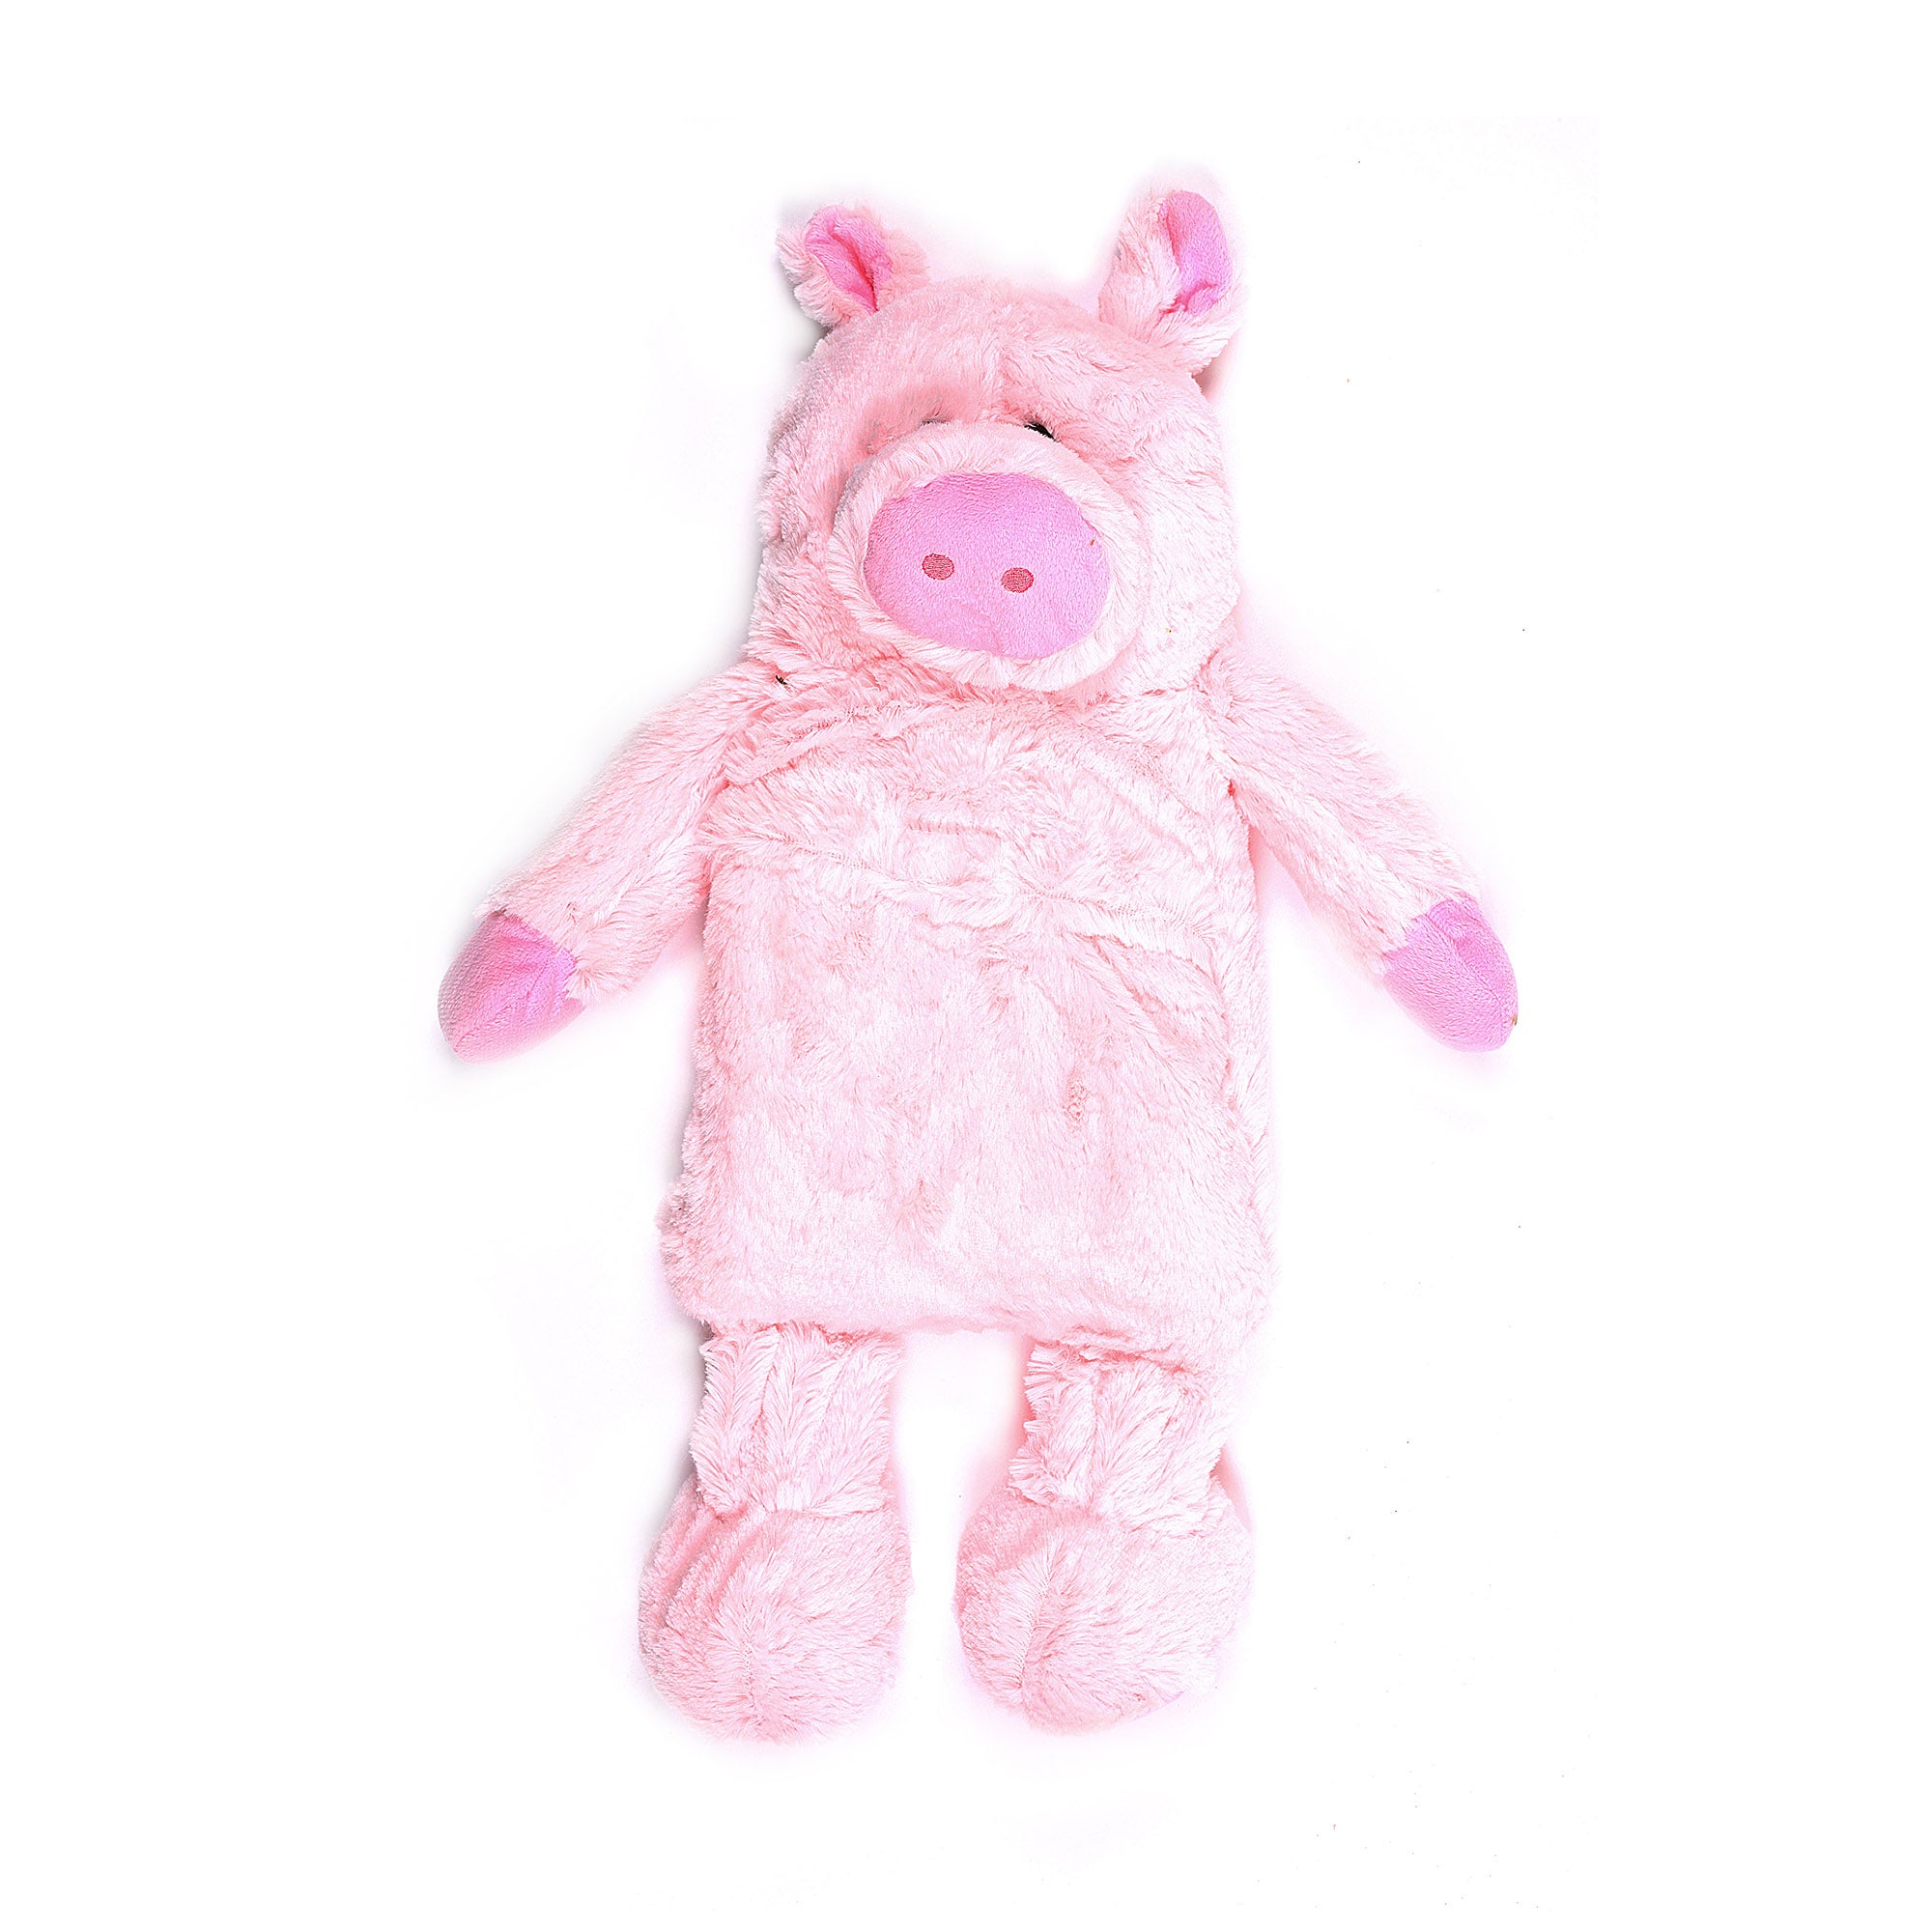 Pig Character Hot Water Bottle